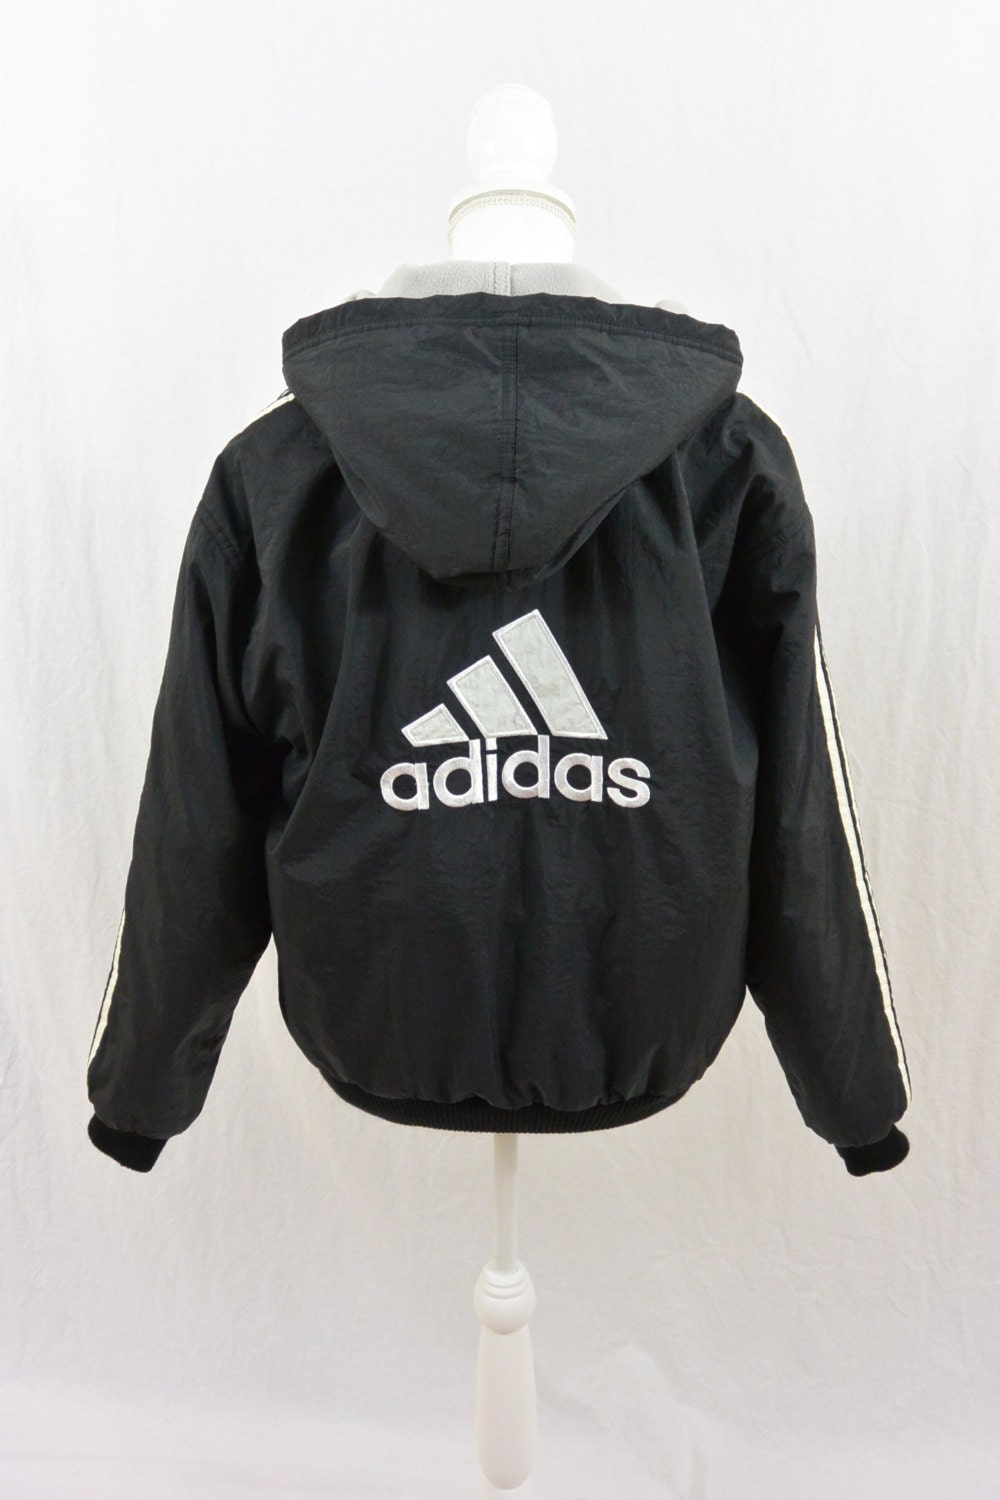 vintage adidas jacket coat size xs small puffer jacket. Black Bedroom Furniture Sets. Home Design Ideas